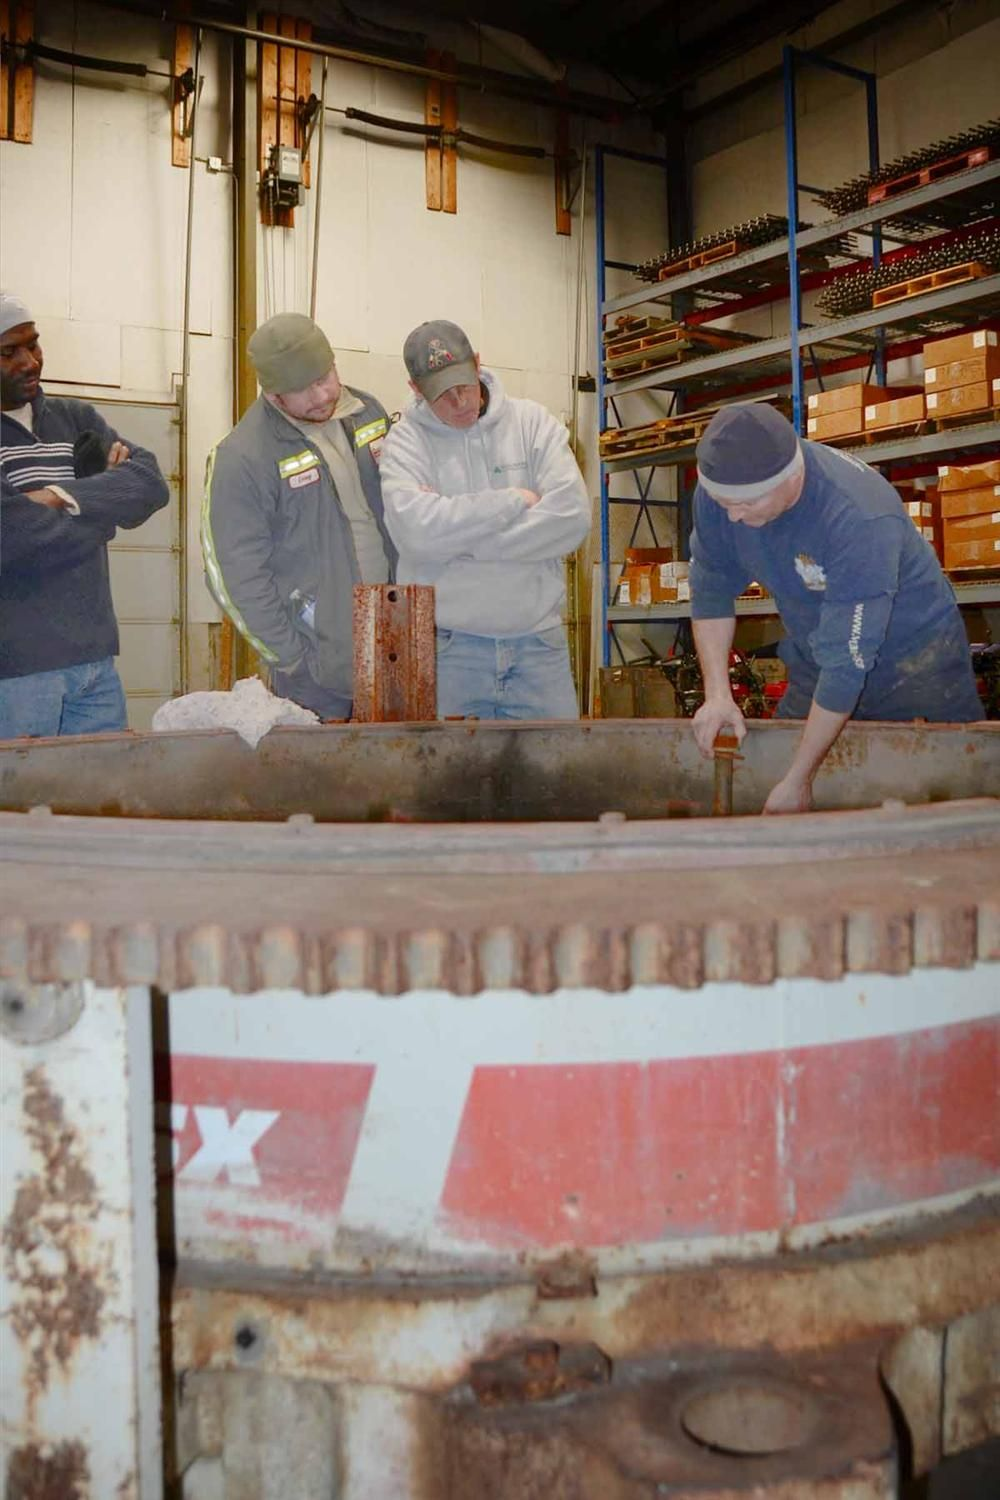 Jamie Zisk (R) demonstrates cone crusher clamp ring assembly to (L-R) Anthony Williams of Century Aggregates, and Tim Allard and Doug Pilcher of Benevento Sand and Stone.